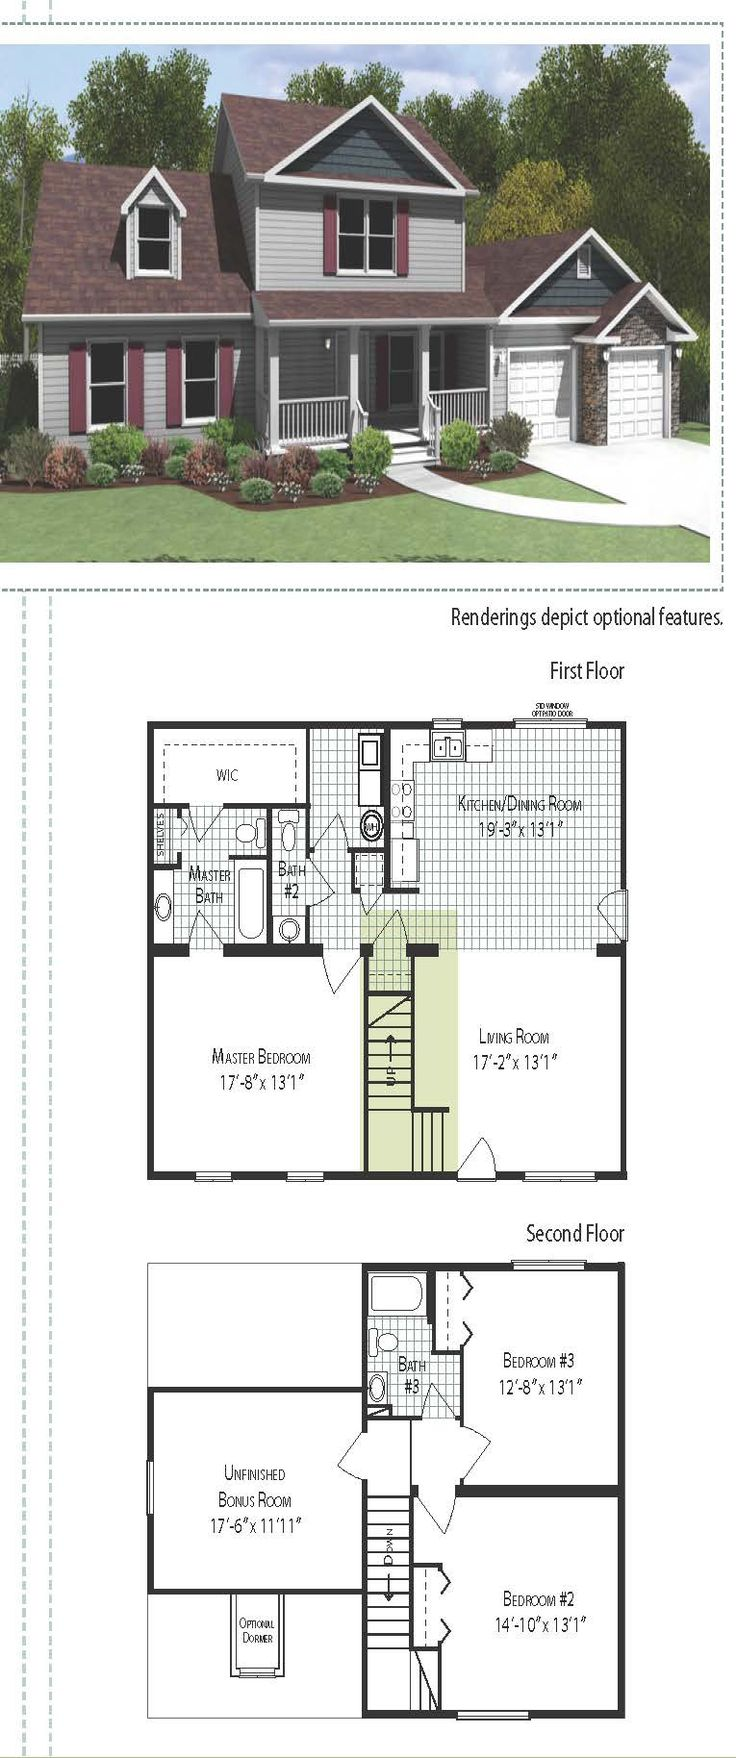 31 best floor plans images on pinterest square feet floor plans suburban style two story home 1879 square feet this home includes a small and